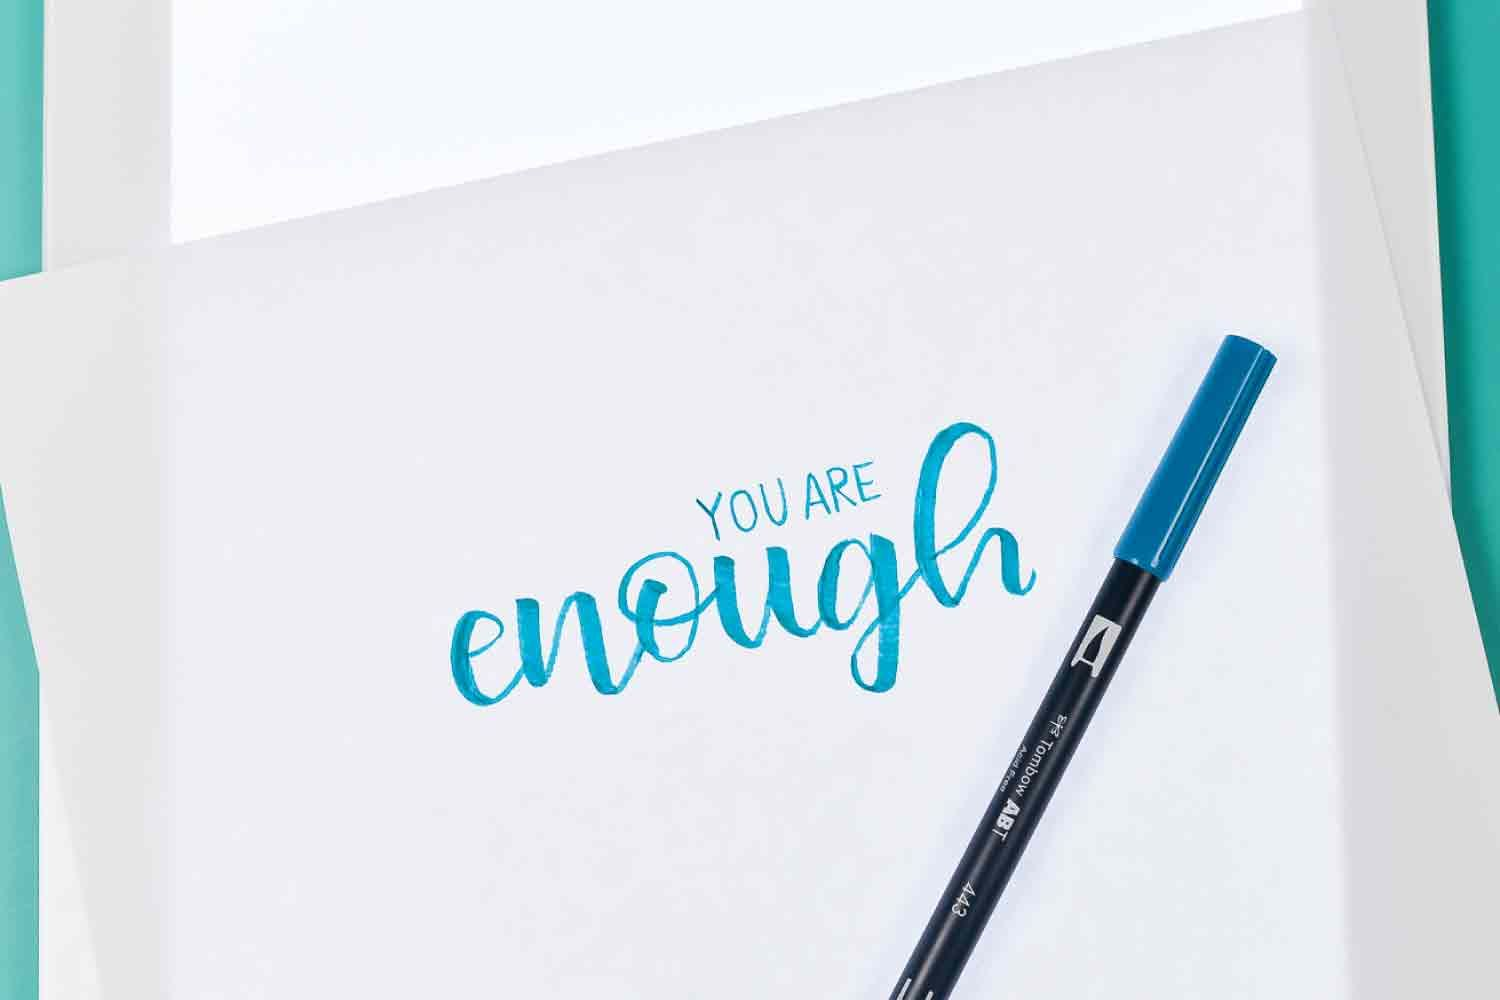 Using The Cricut Brightpad For Hand Lettering Hand Lettering Hand Lettering Practice Lettering